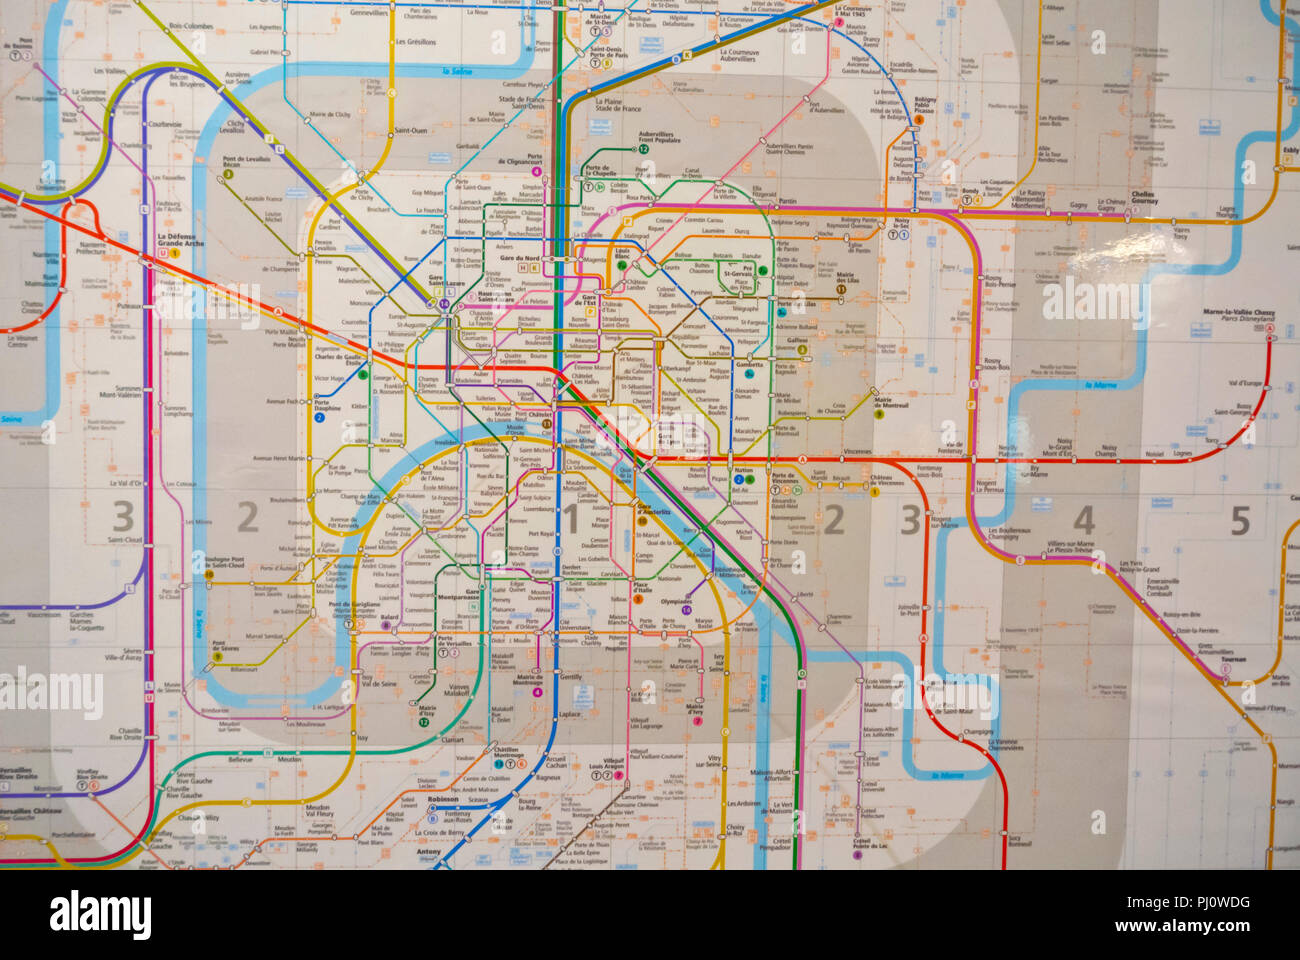 Paris Metro Map Stock Photos & Paris Metro Map Stock Images - Alamy